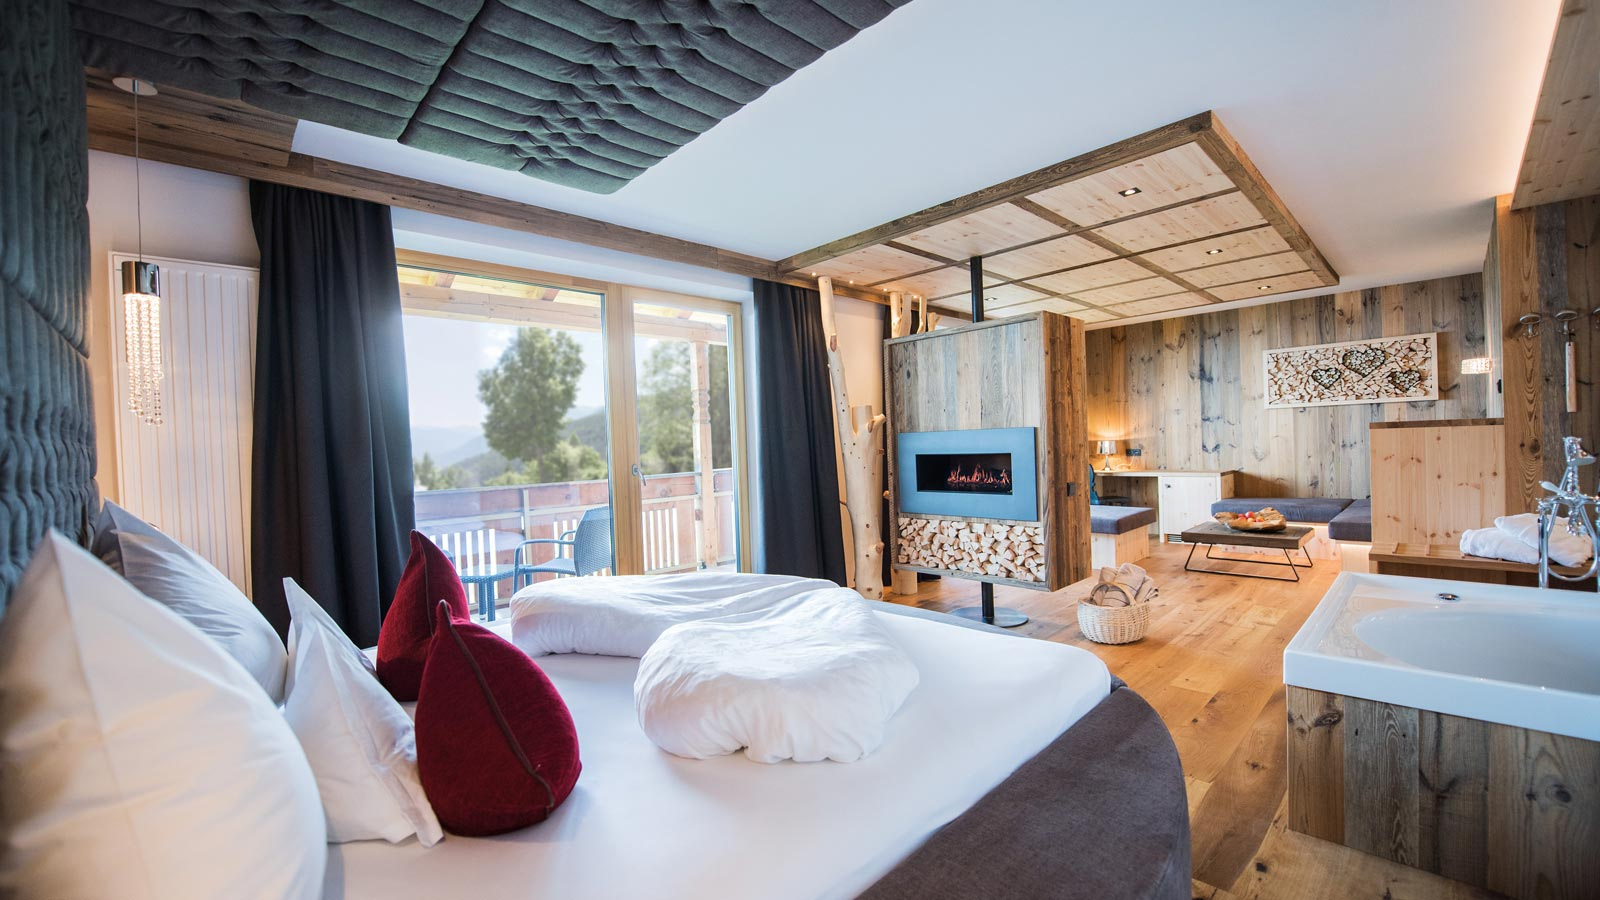 Romantic Suite of Parkhotel Holzerhof in Holz, furnished natural materials with Queensize Bett